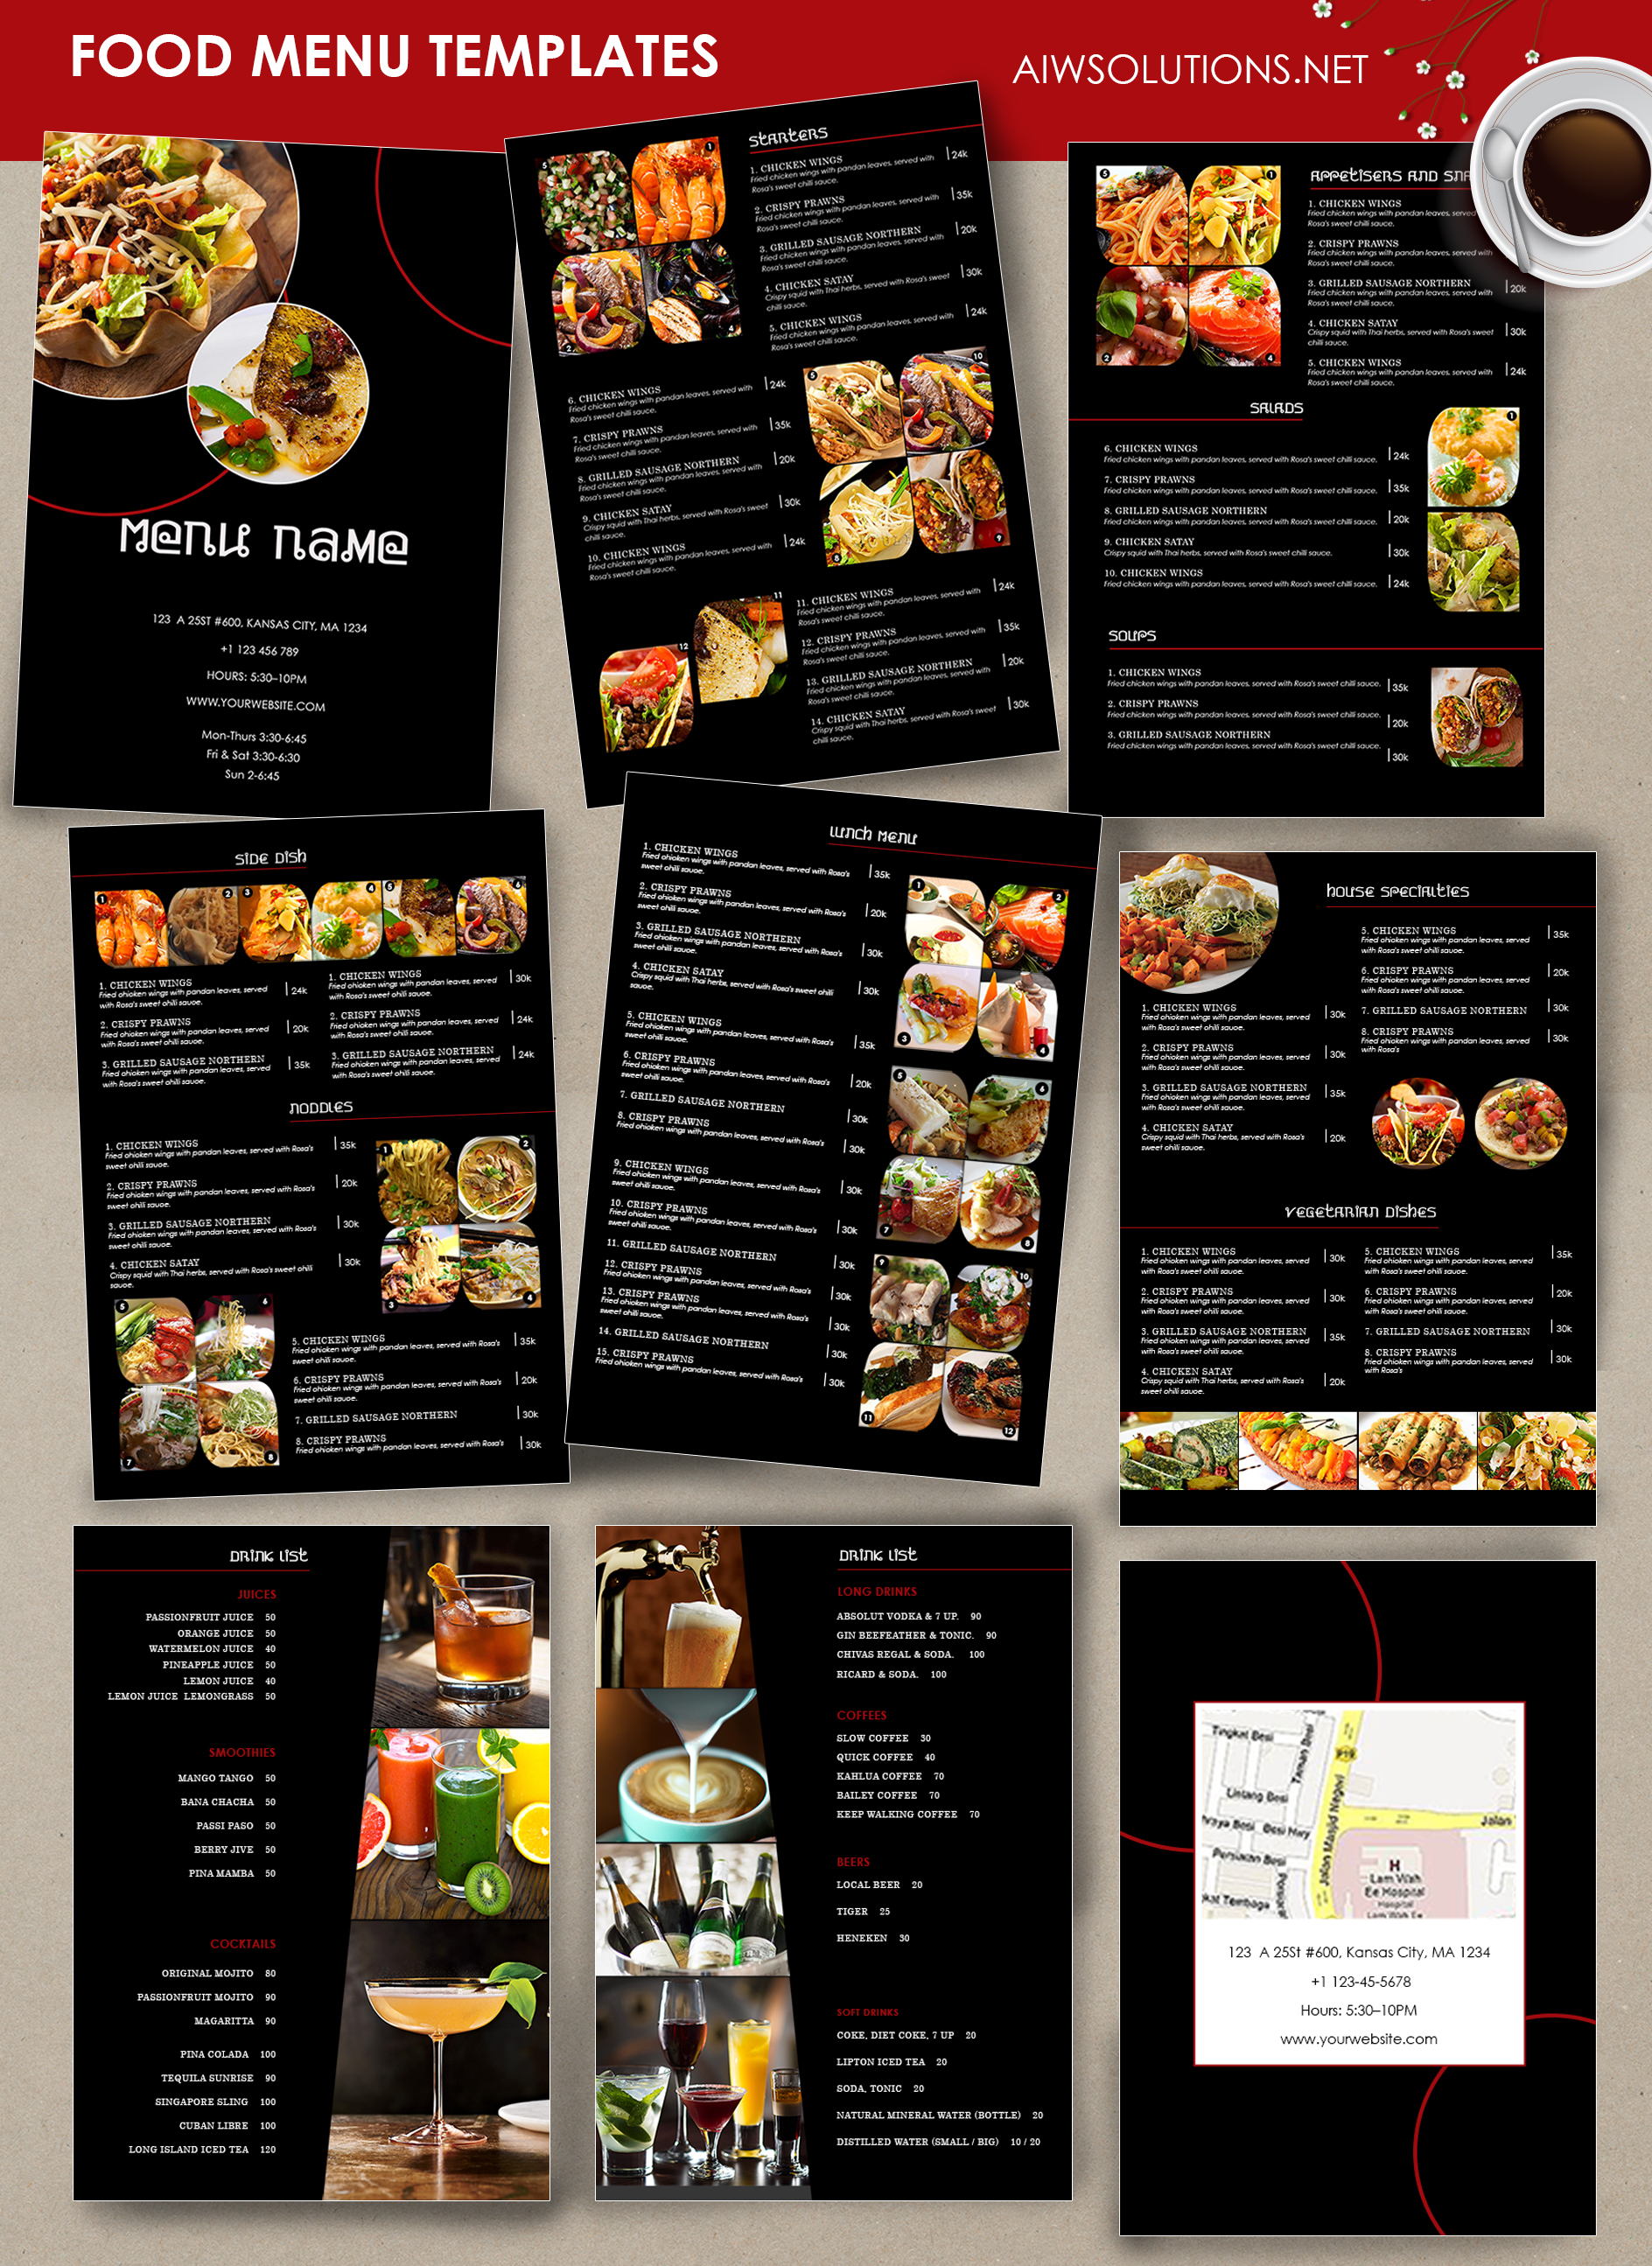 Design Amp Templates Menu Templates Wedding Menu Food Menu Bar Menu Template Bar Menu